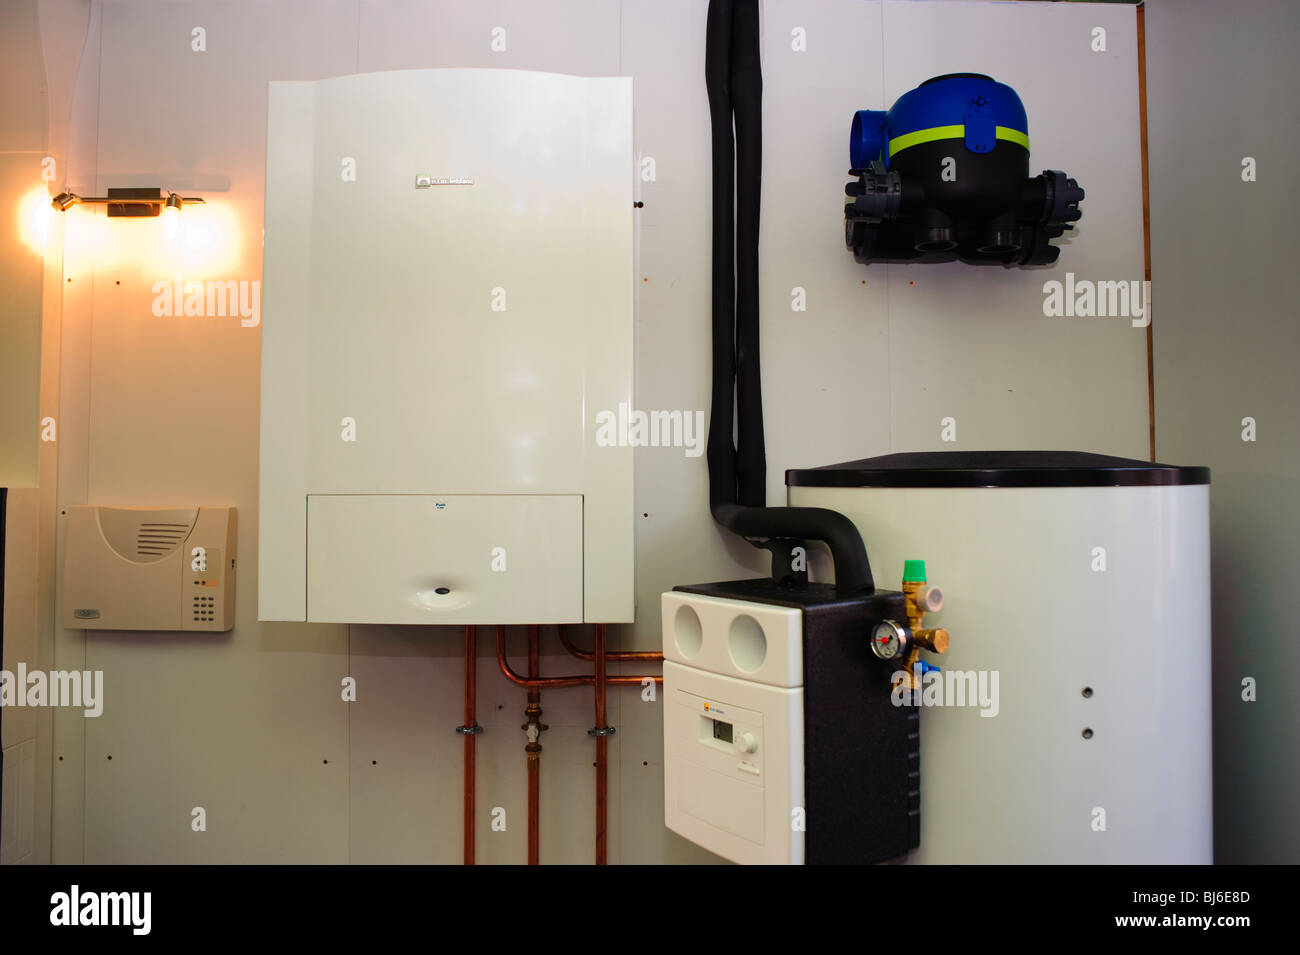 Boiler Installation Stockfotos & Boiler Installation Bilder - Alamy